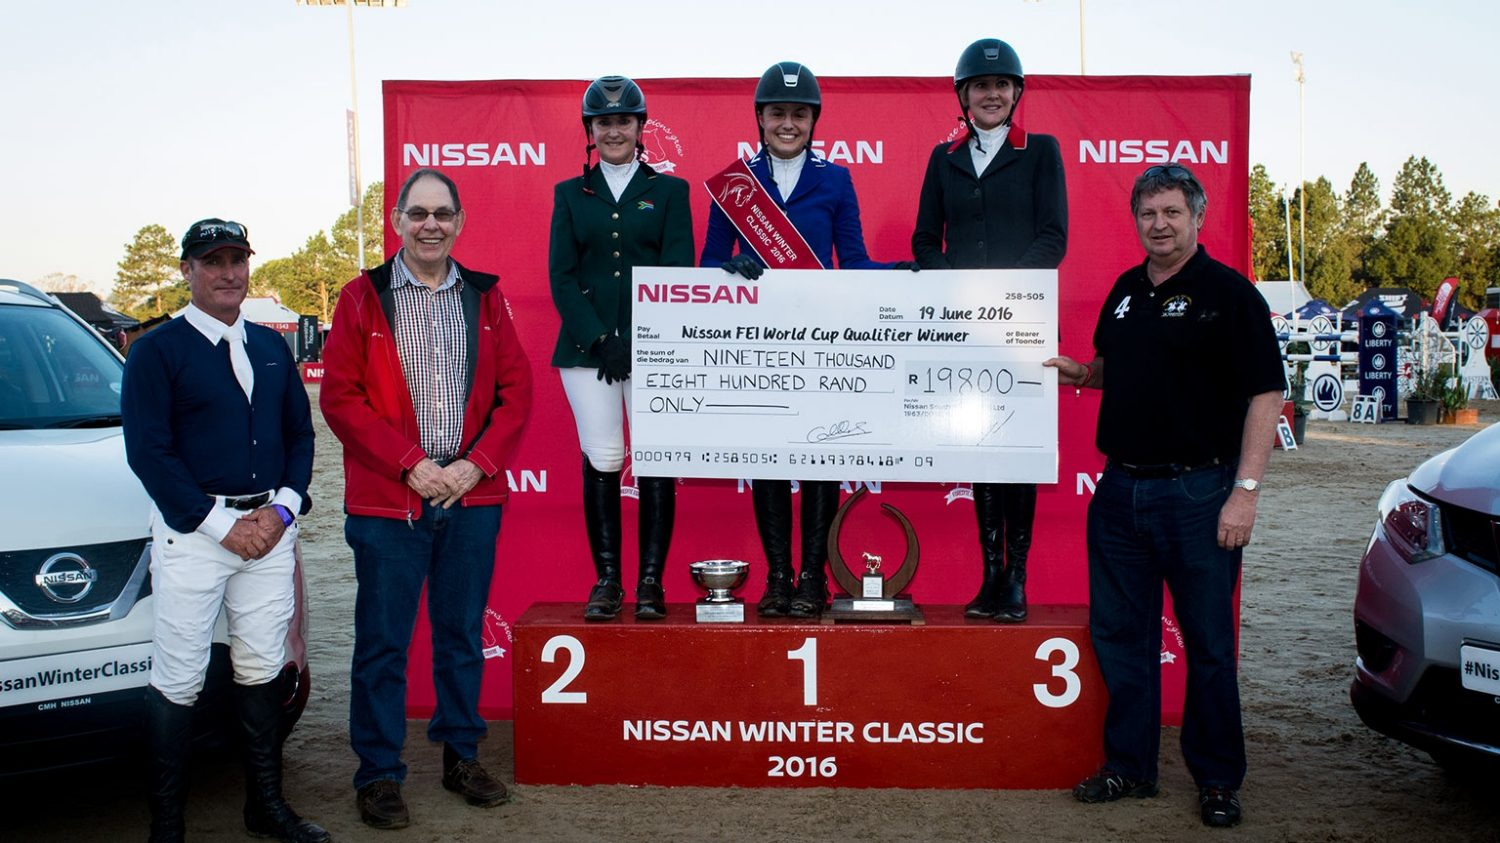 The winners of the Nissan Winter Classic